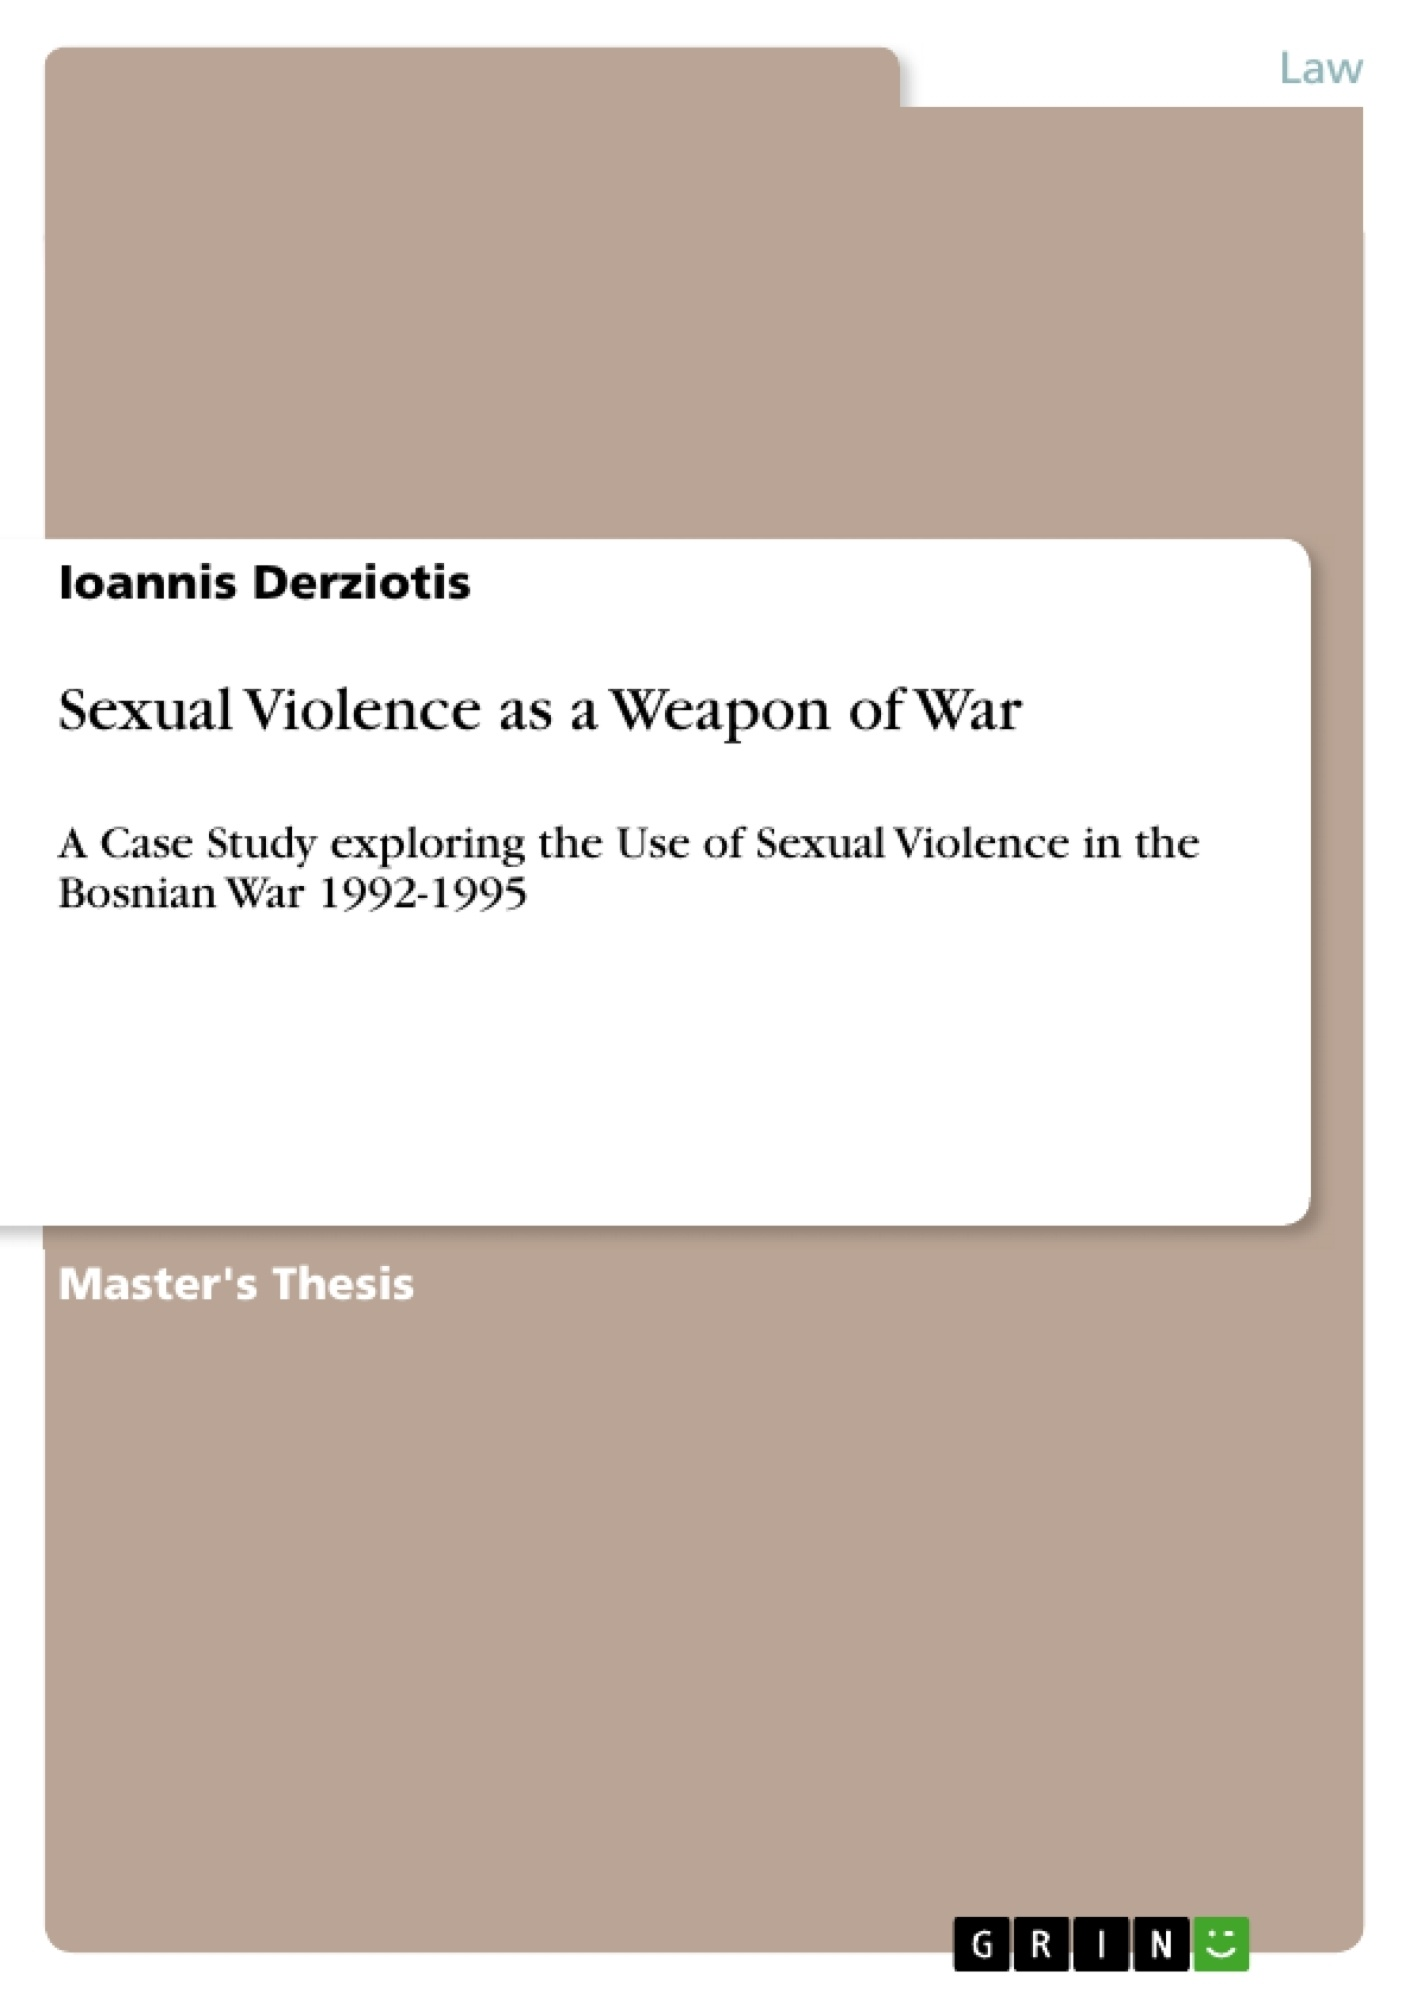 Title: Sexual Violence as a Weapon of War